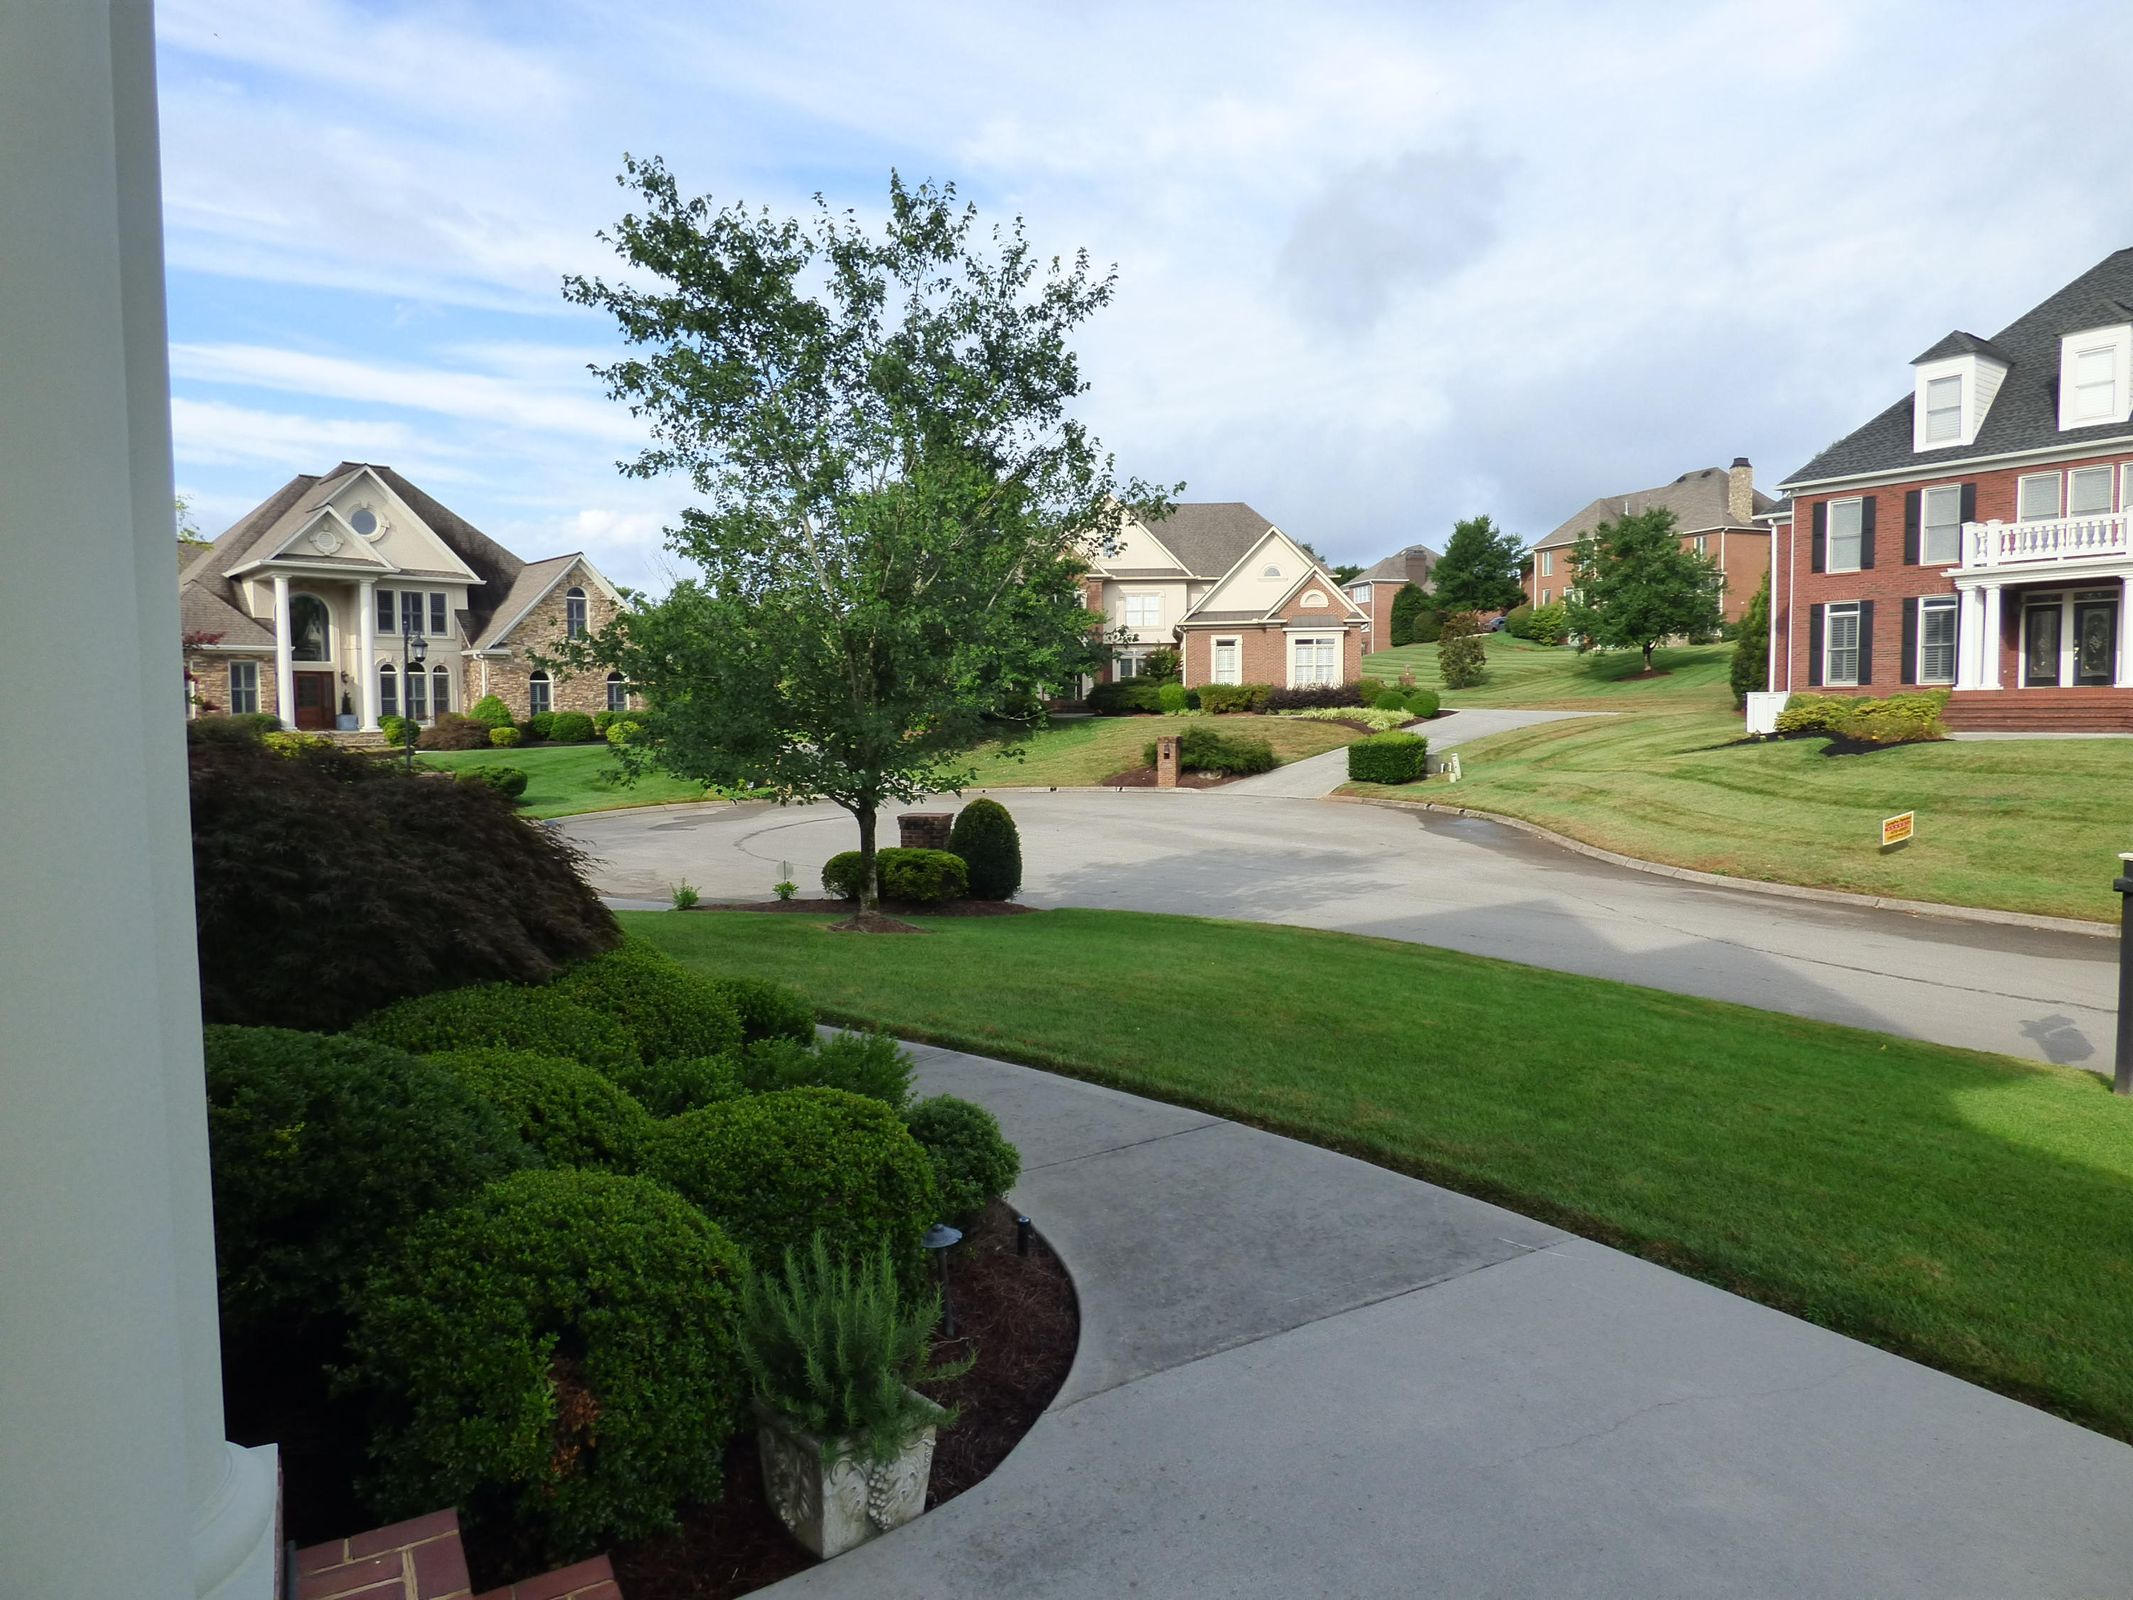 Cul-de-sac View from Front Porch